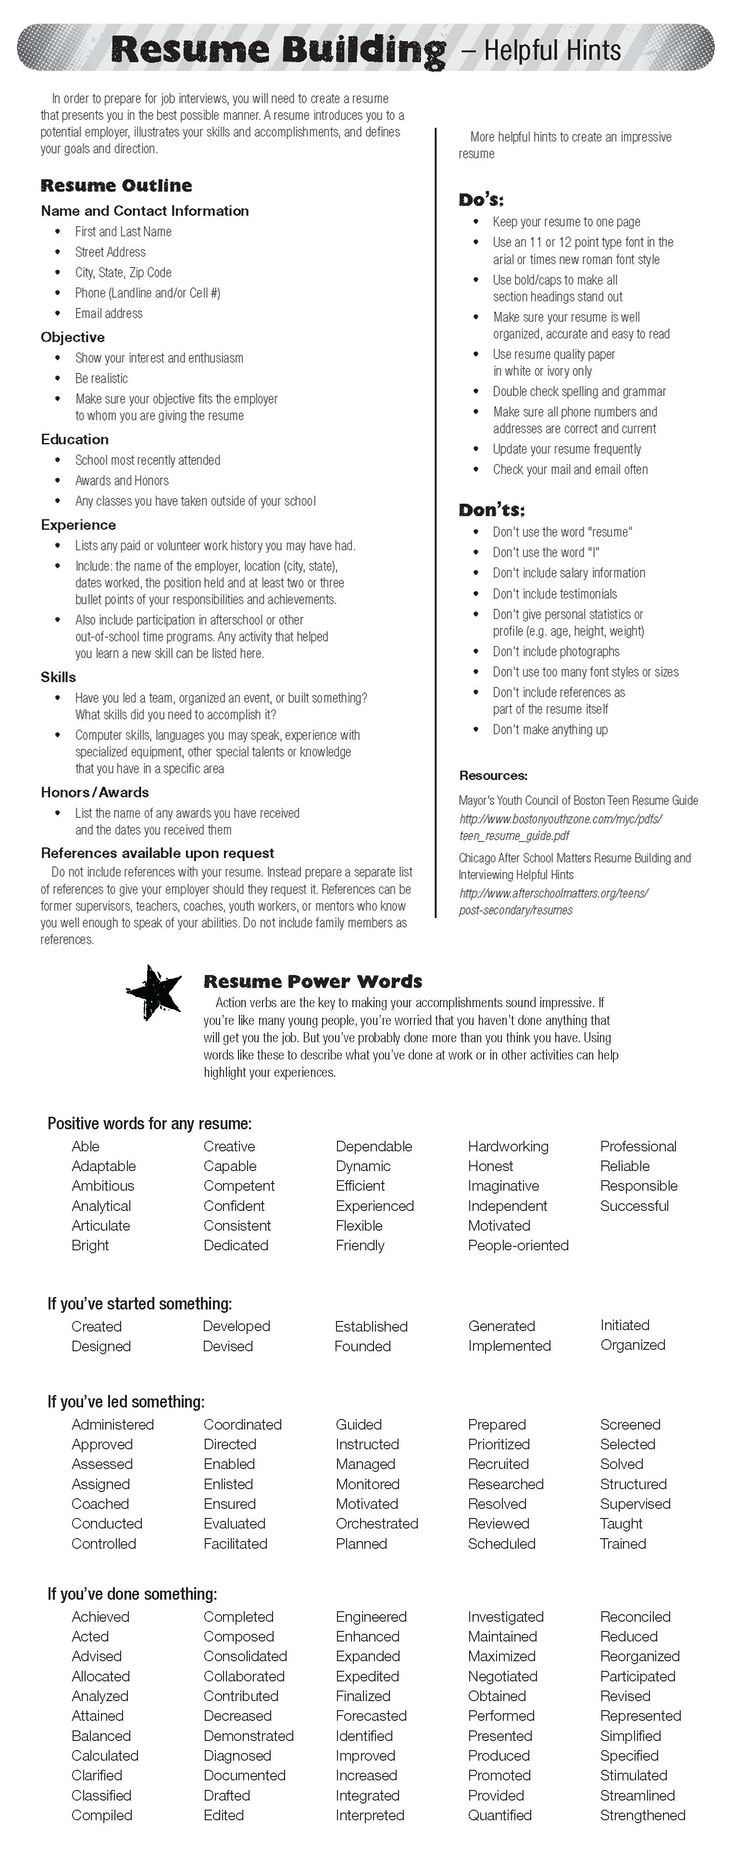 Opposenewapstandardsus  Seductive  Ideas About Resume On Pinterest  Cv Format Resume Cv And  With Glamorous  Ideas About Resume On Pinterest  Cv Format Resume Cv And Resume Templates With Amusing Technical Writer Resume Sample Also Advertising Account Executive Resume In Addition Create My Resume For Free And Accountant Resume Objective As Well As Sales Resume Templates Additionally Resume Paper Size From Pinterestcom With Opposenewapstandardsus  Glamorous  Ideas About Resume On Pinterest  Cv Format Resume Cv And  With Amusing  Ideas About Resume On Pinterest  Cv Format Resume Cv And Resume Templates And Seductive Technical Writer Resume Sample Also Advertising Account Executive Resume In Addition Create My Resume For Free From Pinterestcom